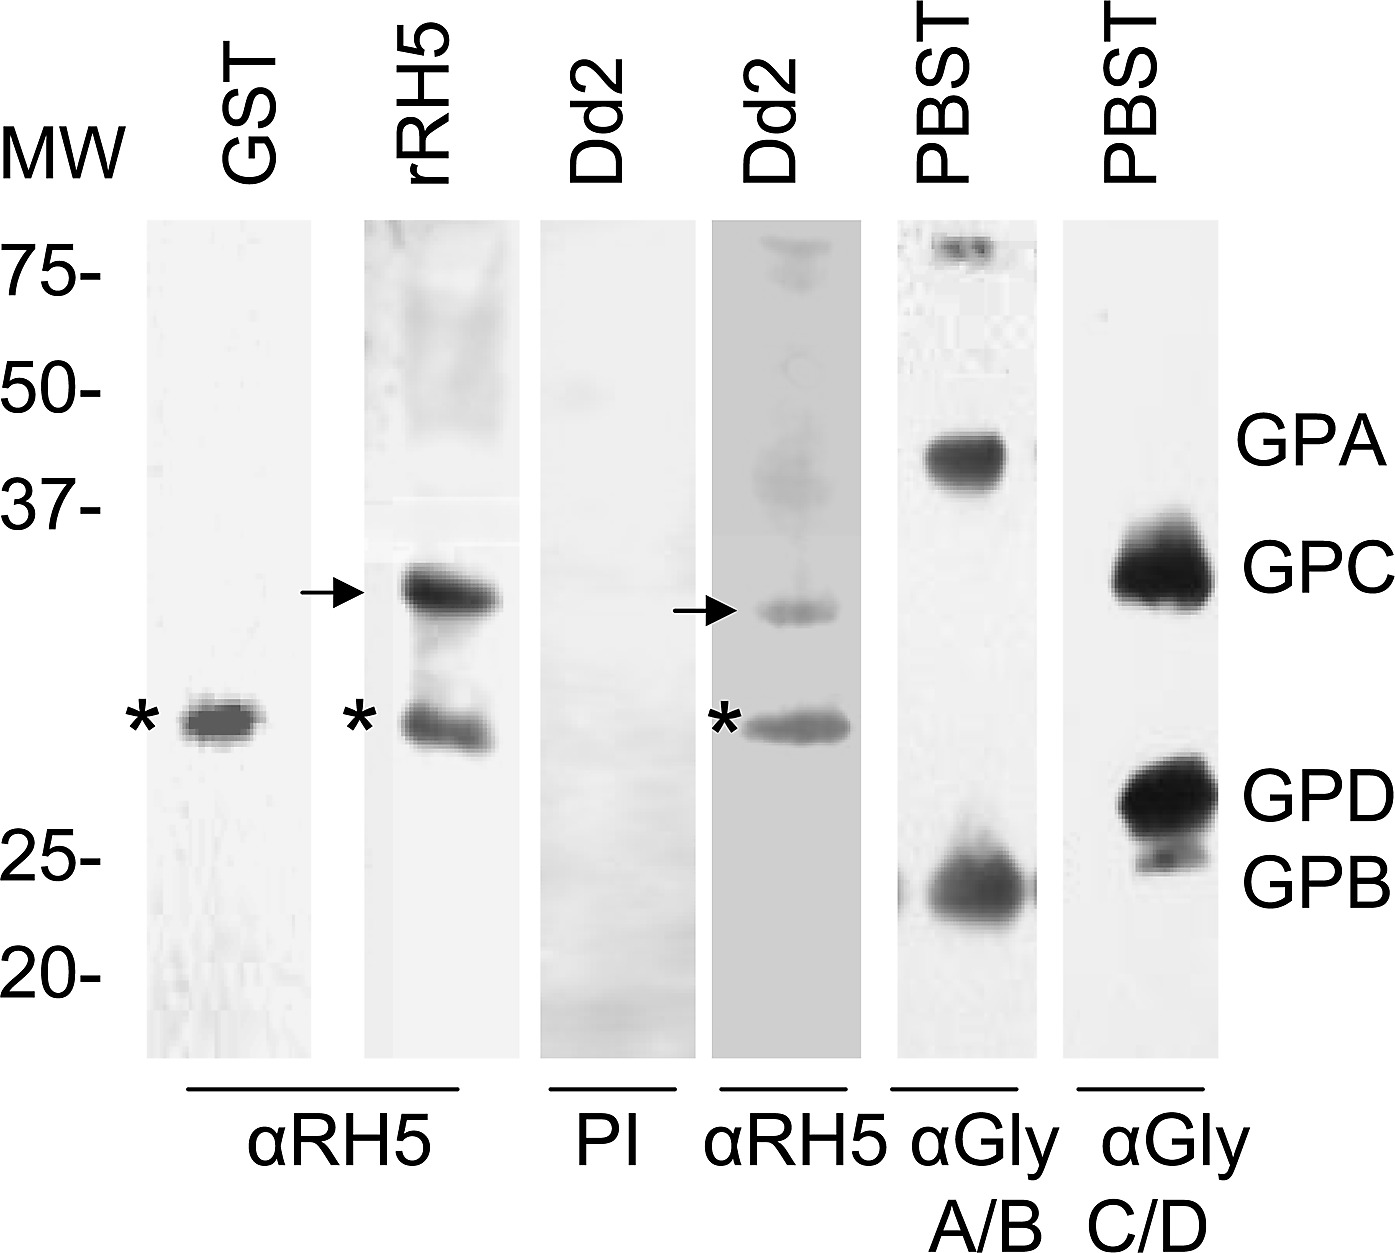 PfRH5 binds to a ∼32 kDa protein on human erythrocytes